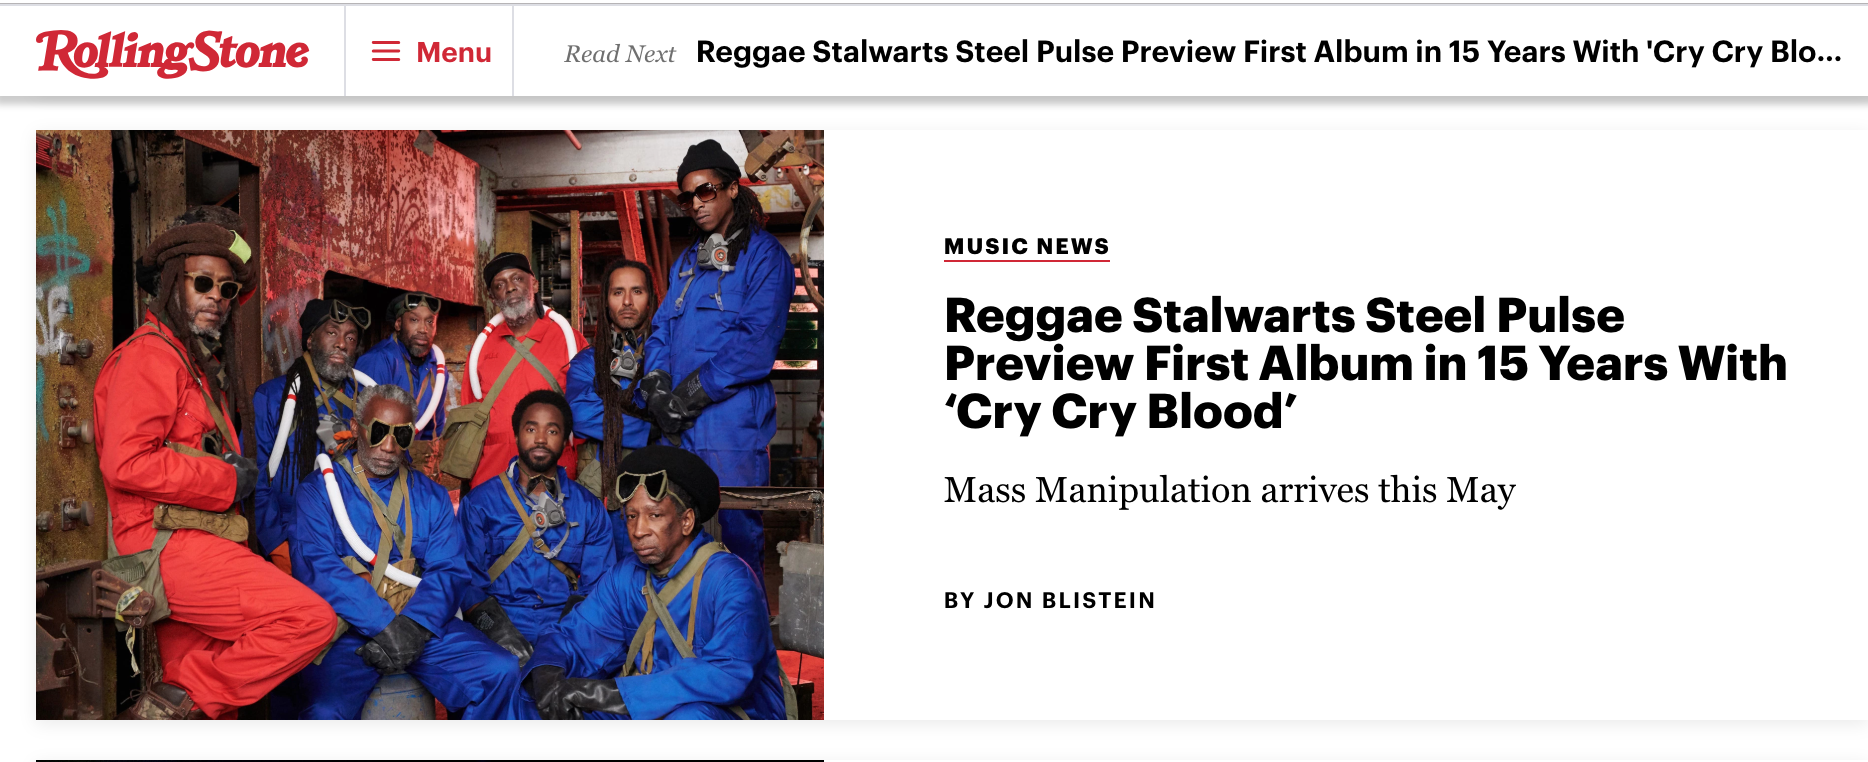 """British reggae outfit Steel Pulse unveiled the lead single, """"Cry Cry Blood,"""" for their first album in 15 years,  Mass Manipulation , out May 17th via Rootfire Cooperative and the band's own imprint, Wiseman Doctrine.  """"Cry Cry Blood"""" is a meditative rocker with deftly placed horns, guitars and strings bubbling up above the song's thumping groove. Singer David Hinds' lyrics touch on injustice and violence, but end with a revolutionary call as he sings, """"The whole world's taking advantage/While we stand aside and look/It was prophesied we'd rise again/Just take a second look.""""   Mass Manipulation  marks Steel Pulse's first album since 2004's  African Holocaust . Hinds said of the new LP, """"For when it comes to addressing the current issues of the world, we hope that this album will be able to sharpen the minds of man to uproot all negativity, and foster embracement; presenting each and every one of us a higher level of consciousness for a harmonious future.""""  In the years since  African Holocaust , Steel Pulse has released a handful of singles such as   """"Put Your Hoodies On (4 Trayvon),""""   in honor of Trayvon Martin, and   """"Paint it Black,""""   which was released in 2013 to mark what would have been the 100th birthday of Rosa Parks.  Steel Pulse will embark on a massive   world tour   this spring in support of  Mass Manipulation . The group's North American leg kicks off March 30th at the Warfield in San Francisco and runs through September 1st, where they'll play the Dry Diggings Festival in Placerville, California. The group plans to announce more tour dates soon."""